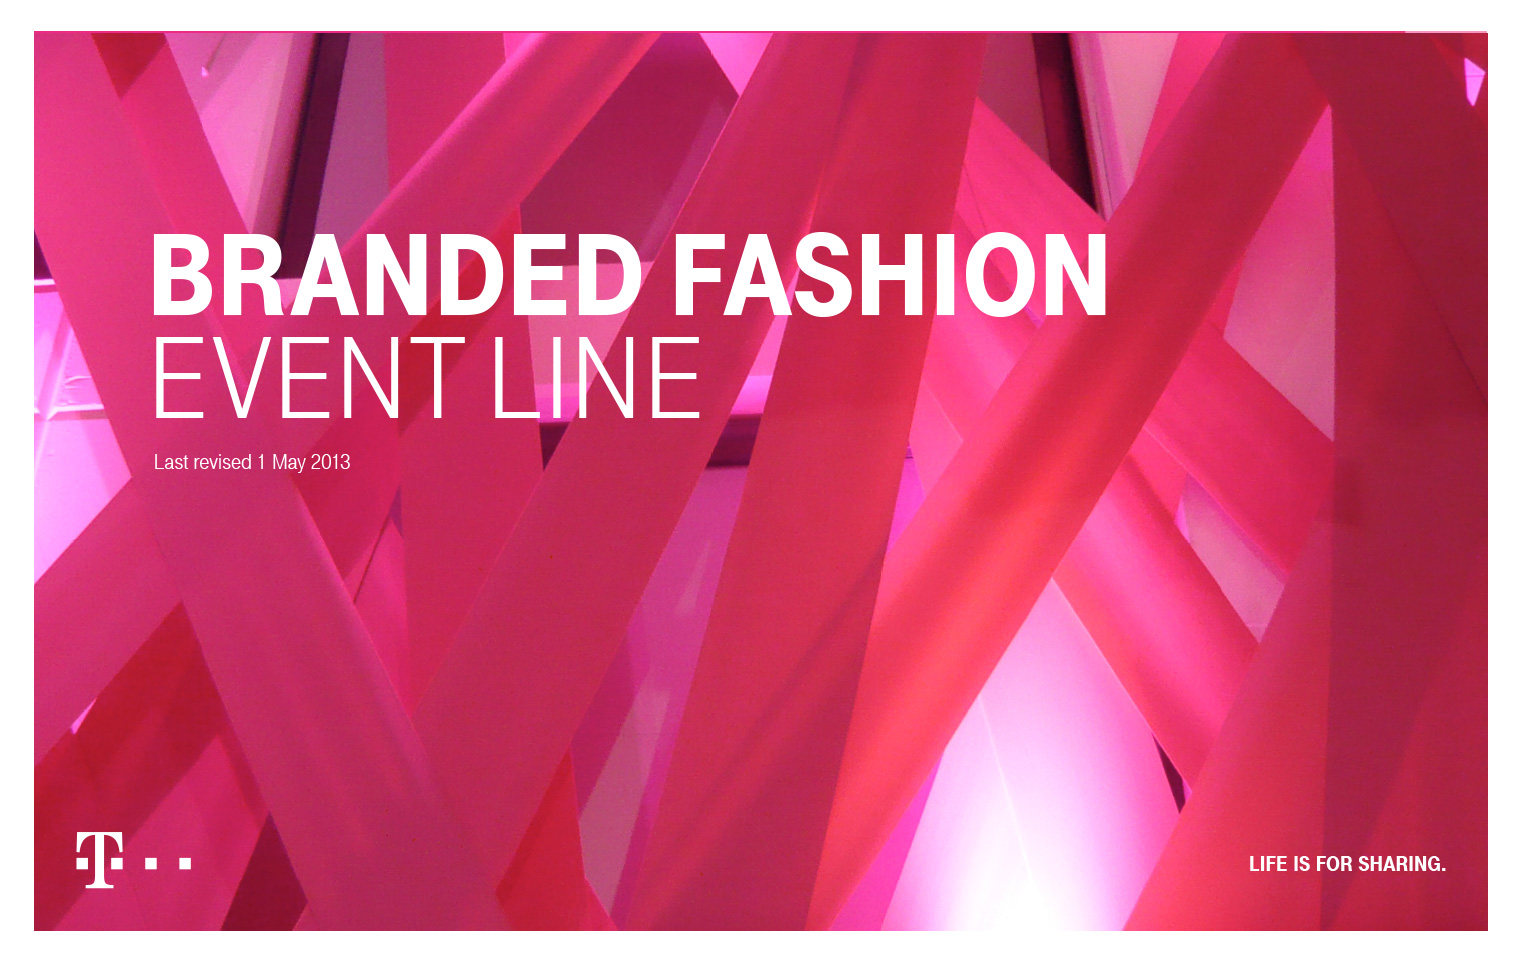 field-guideline-branded-fashion-event-line-style-guide-deutsche-telekom-tmobile